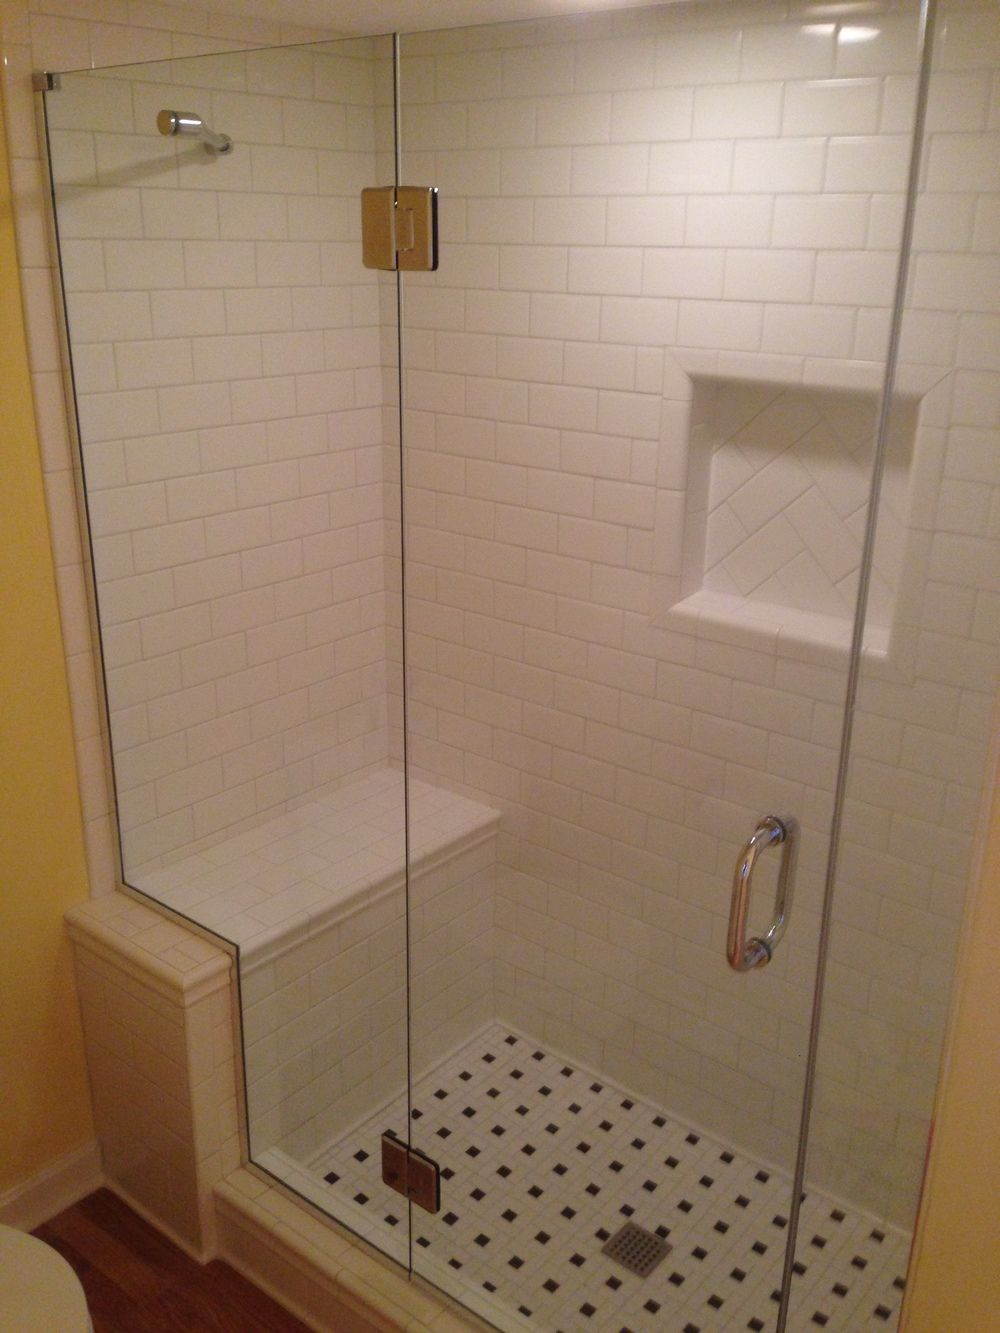 Converting Tub to walk-in shower | Showers, Tubs and 30th